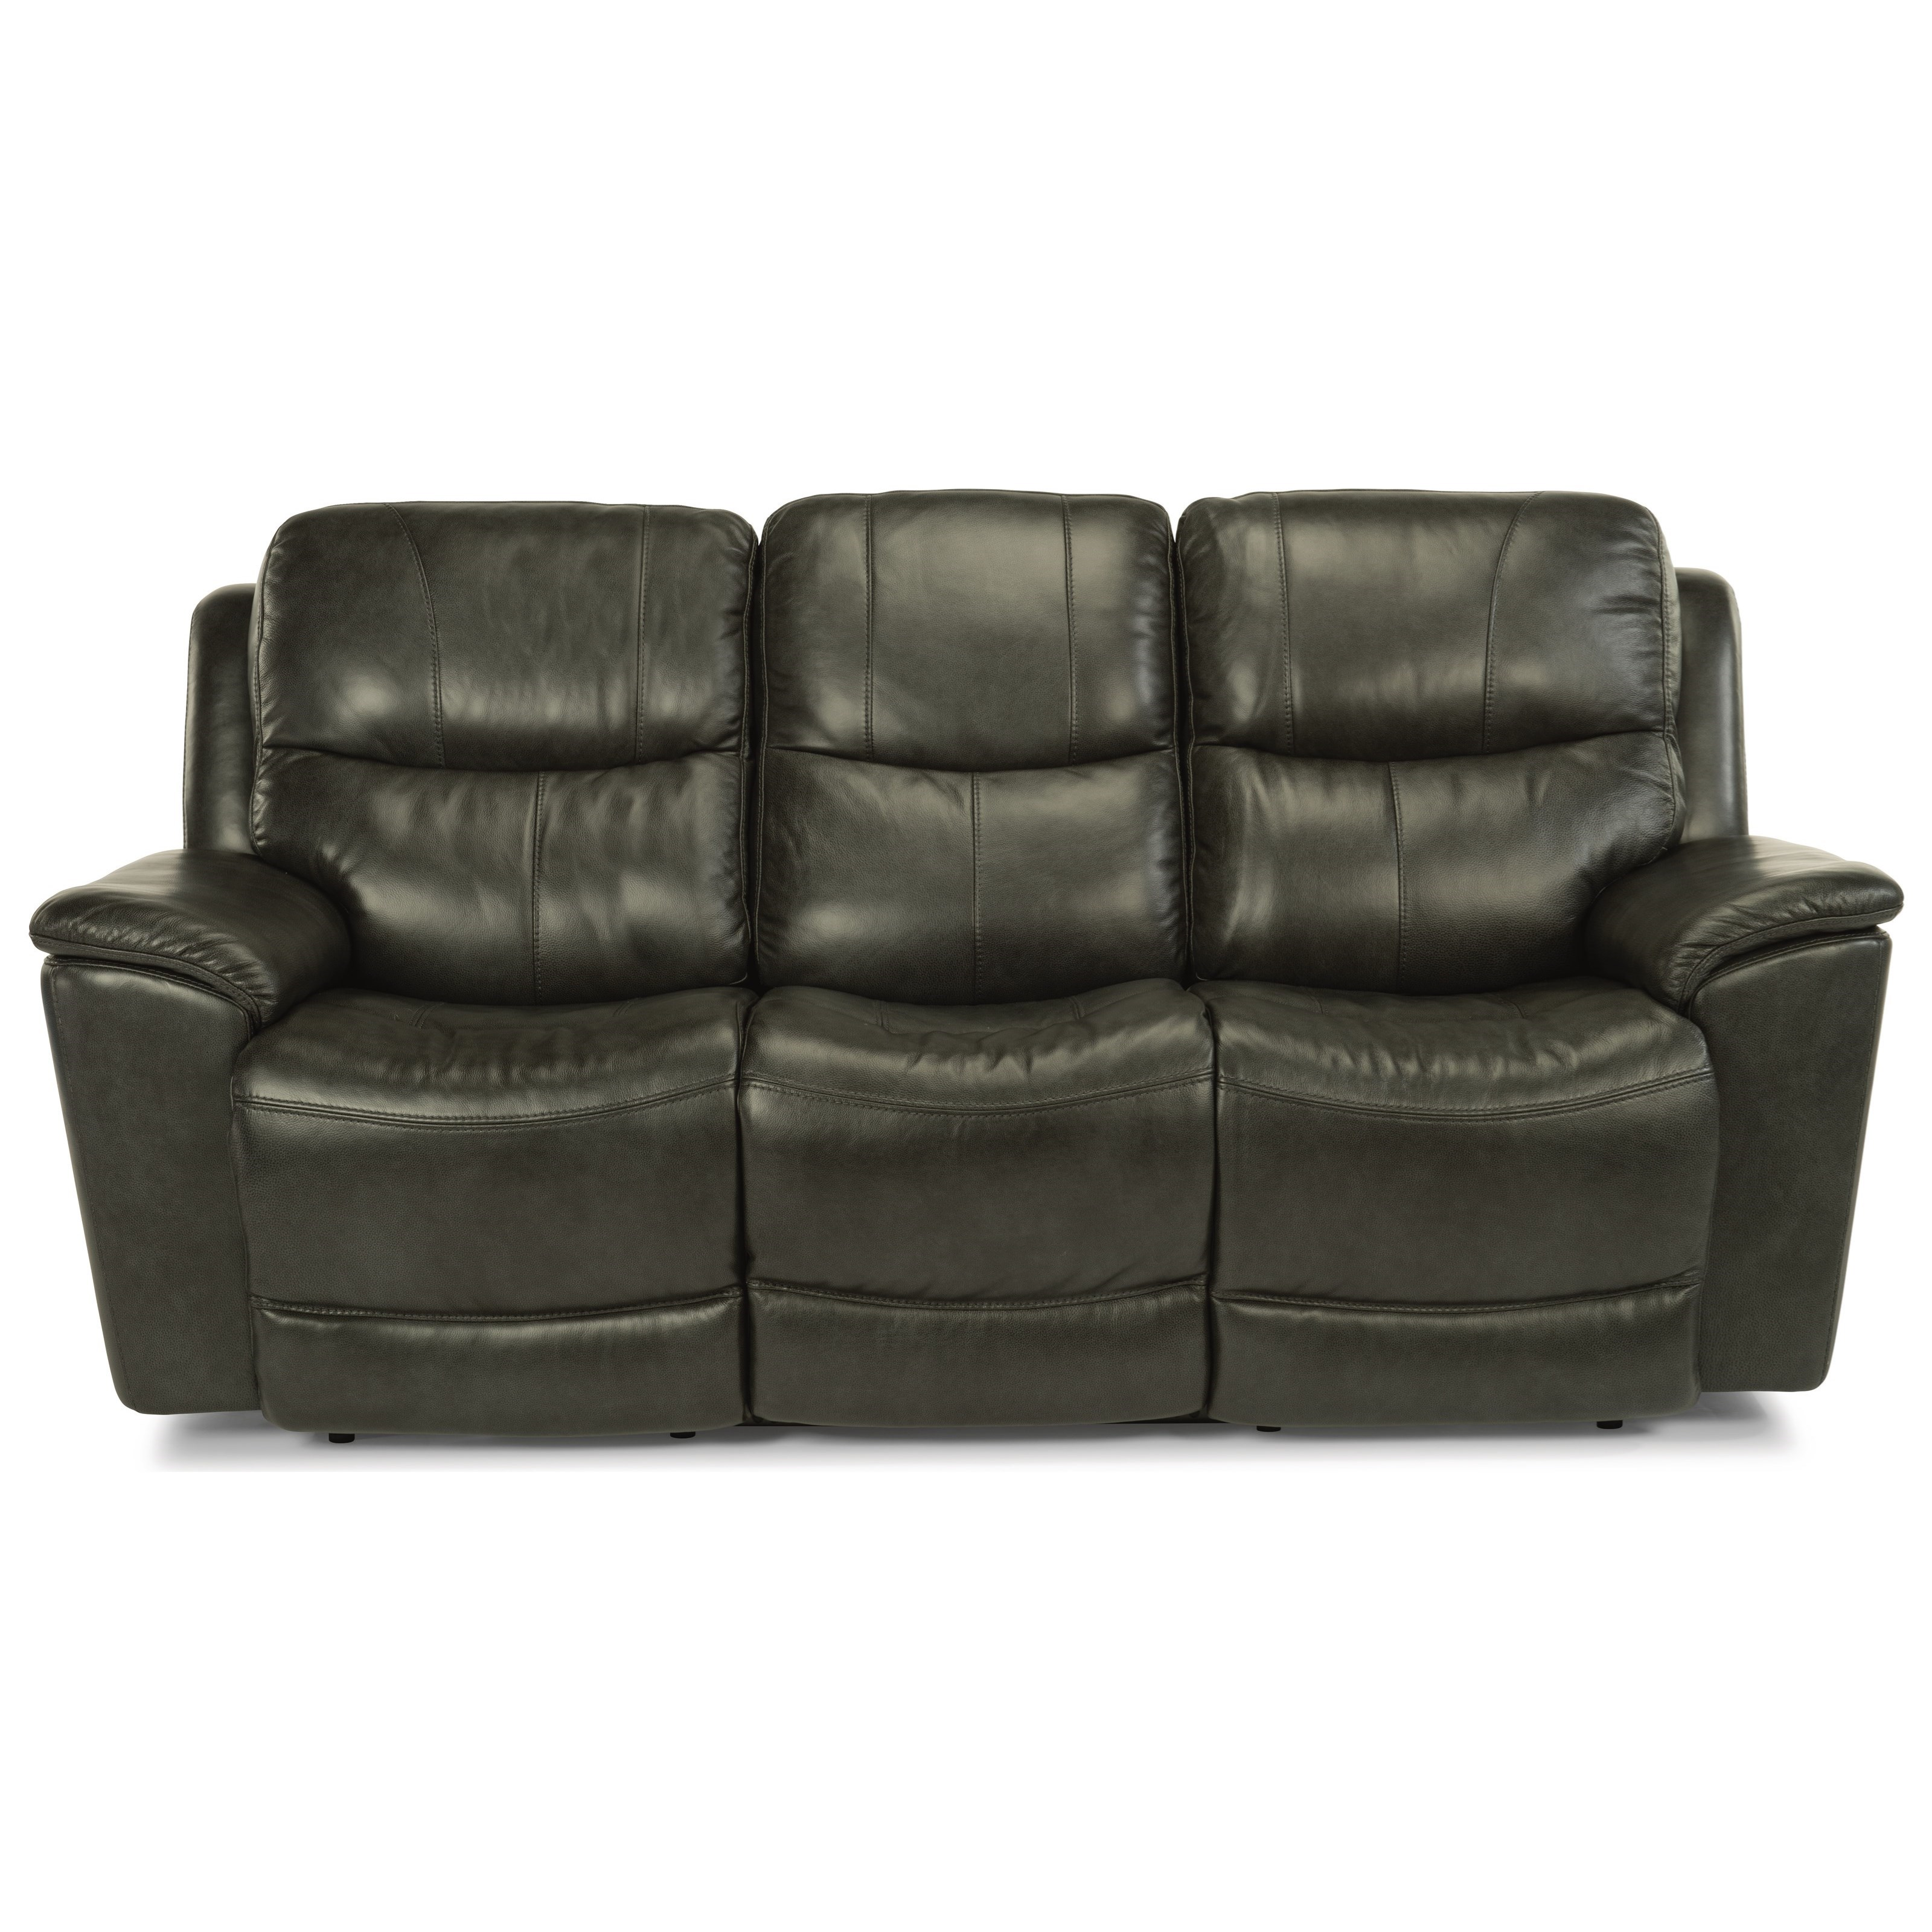 McHenry Power Reclining Sofa by Flexsteel at Crowley Furniture & Mattress